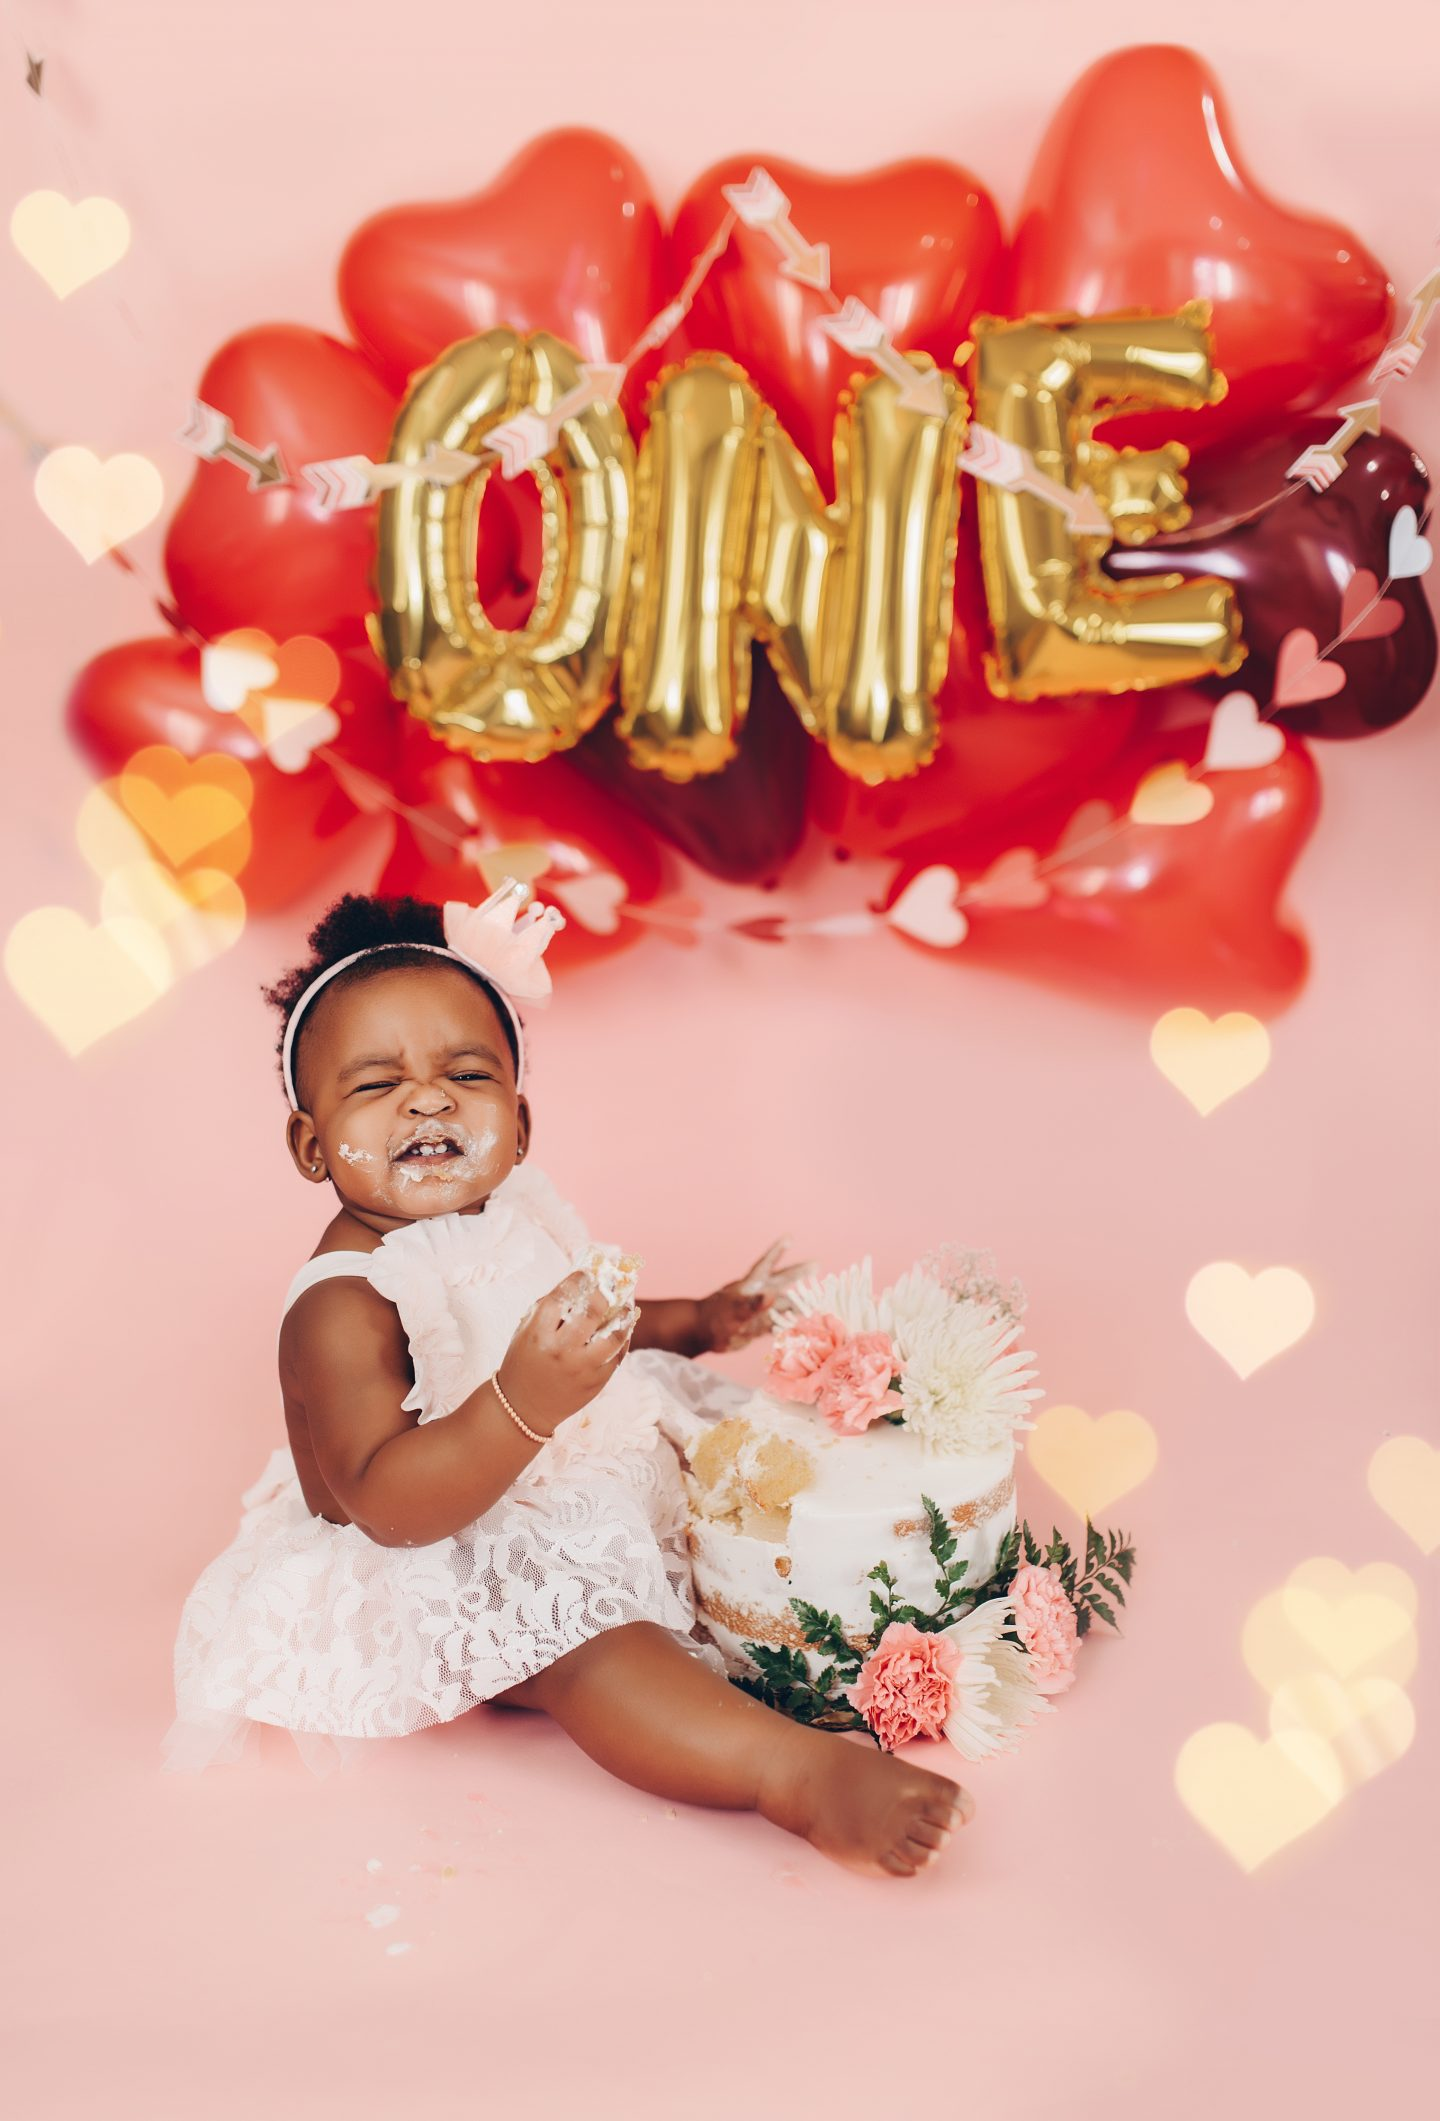 stella-adewunmi-of-jadore-fashion-shares-first-birthday-cake